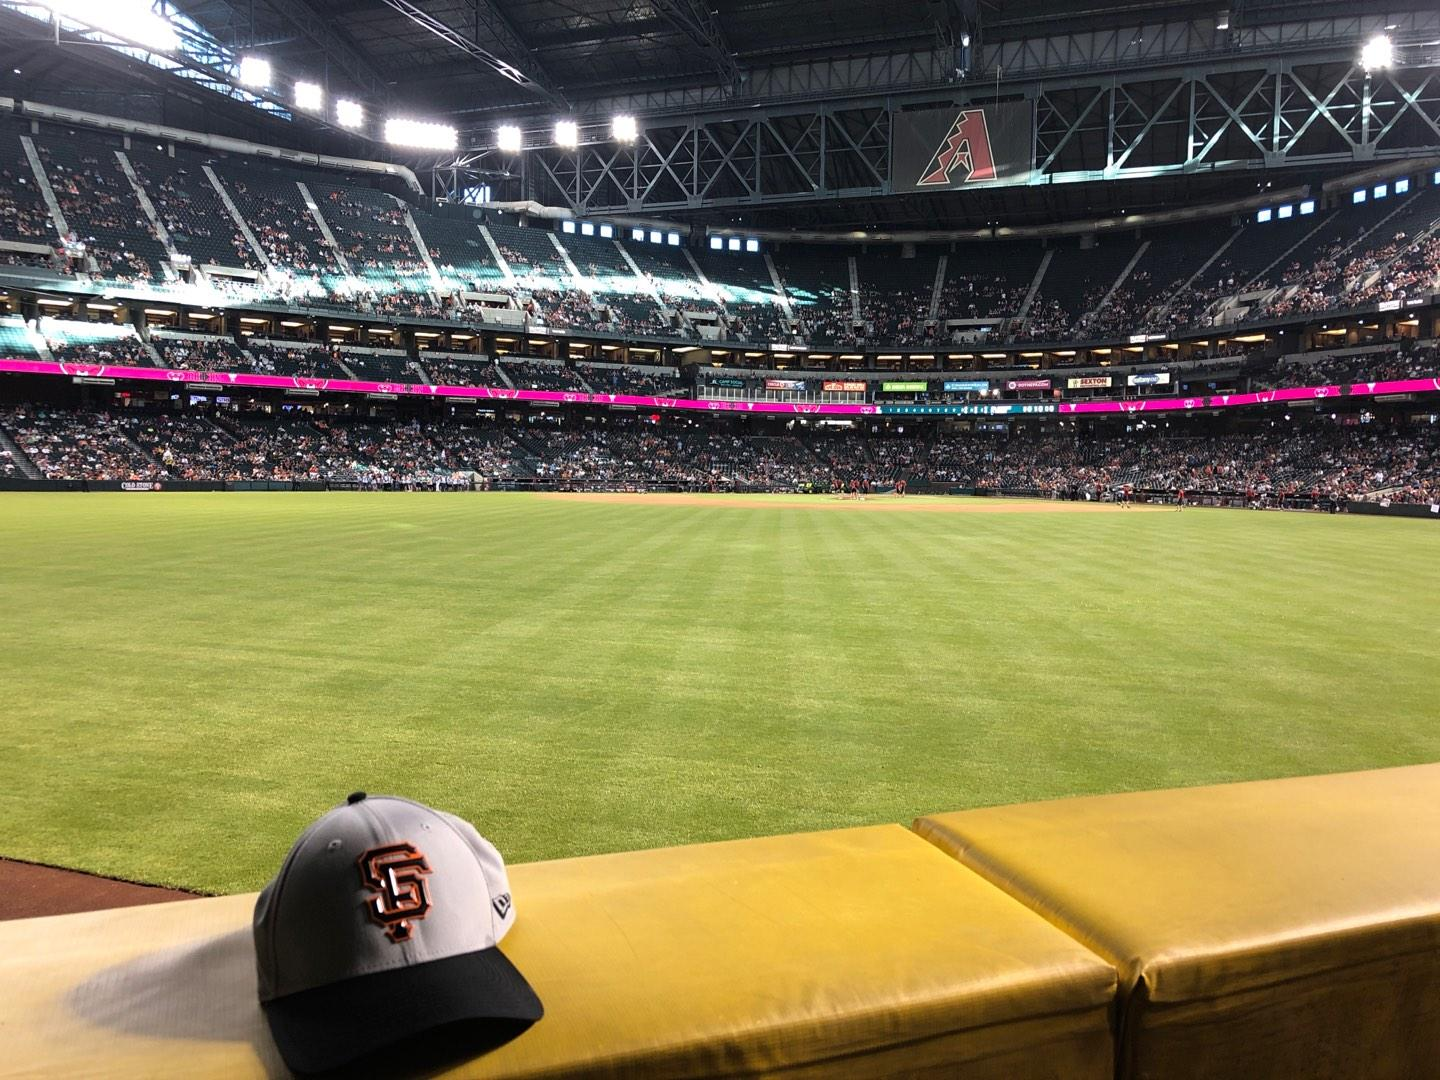 Chase Field Section 144 Row 11 Seat 20